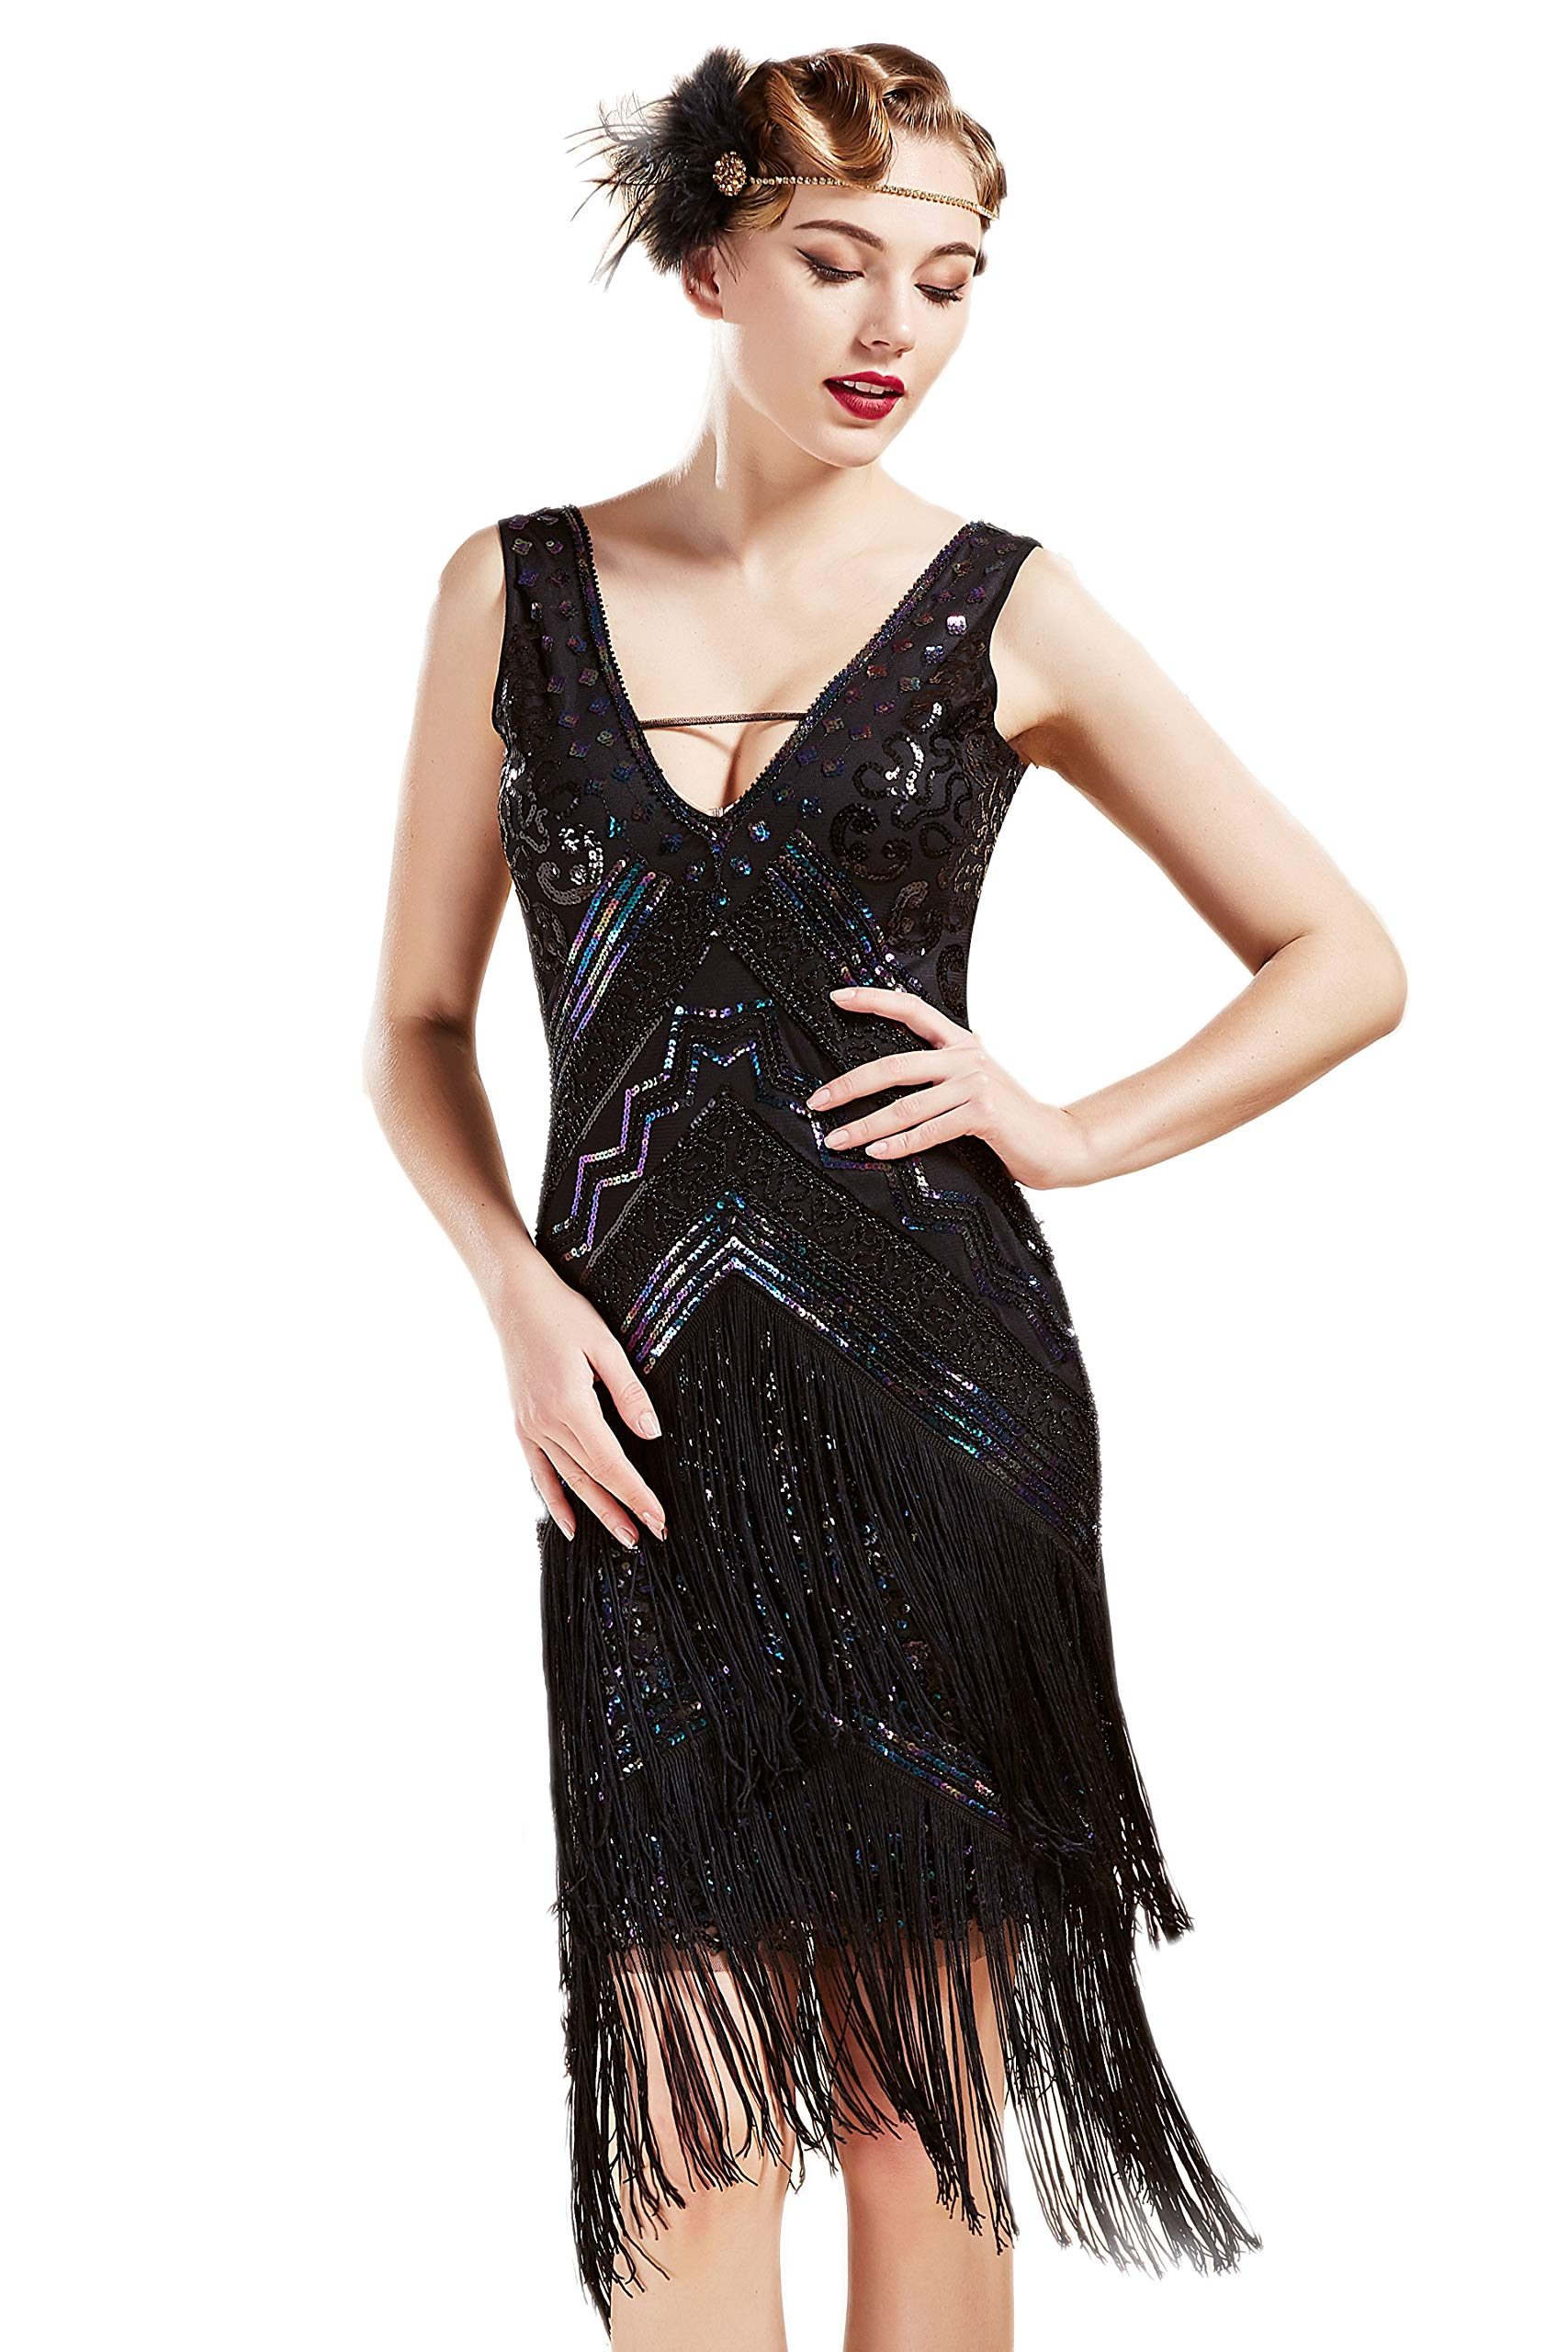 Vintage Inpired Sequin Beaded Flapper Dresses uniq sense xs-4xl Womens Roaring 20s V-Neck Gatsby Dresses